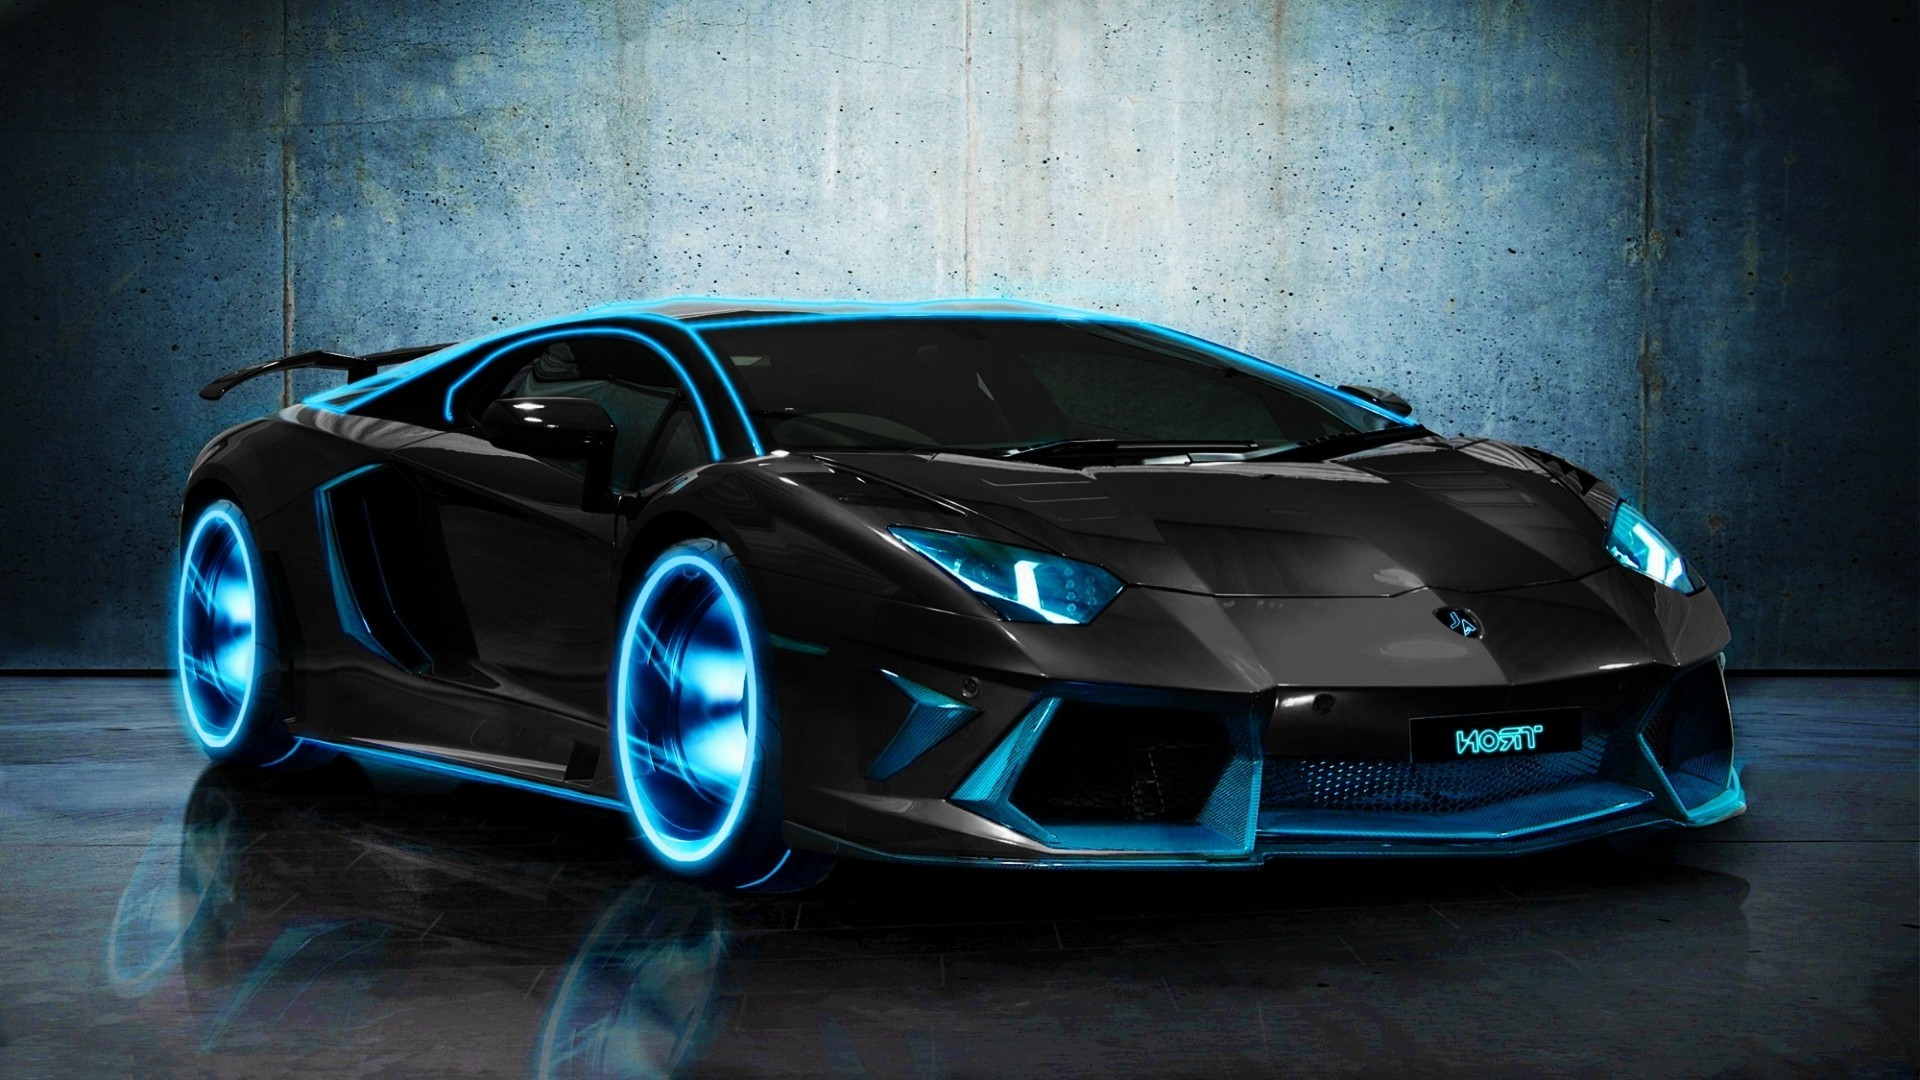 Lamborghini Wallpapers Wallpapersafari